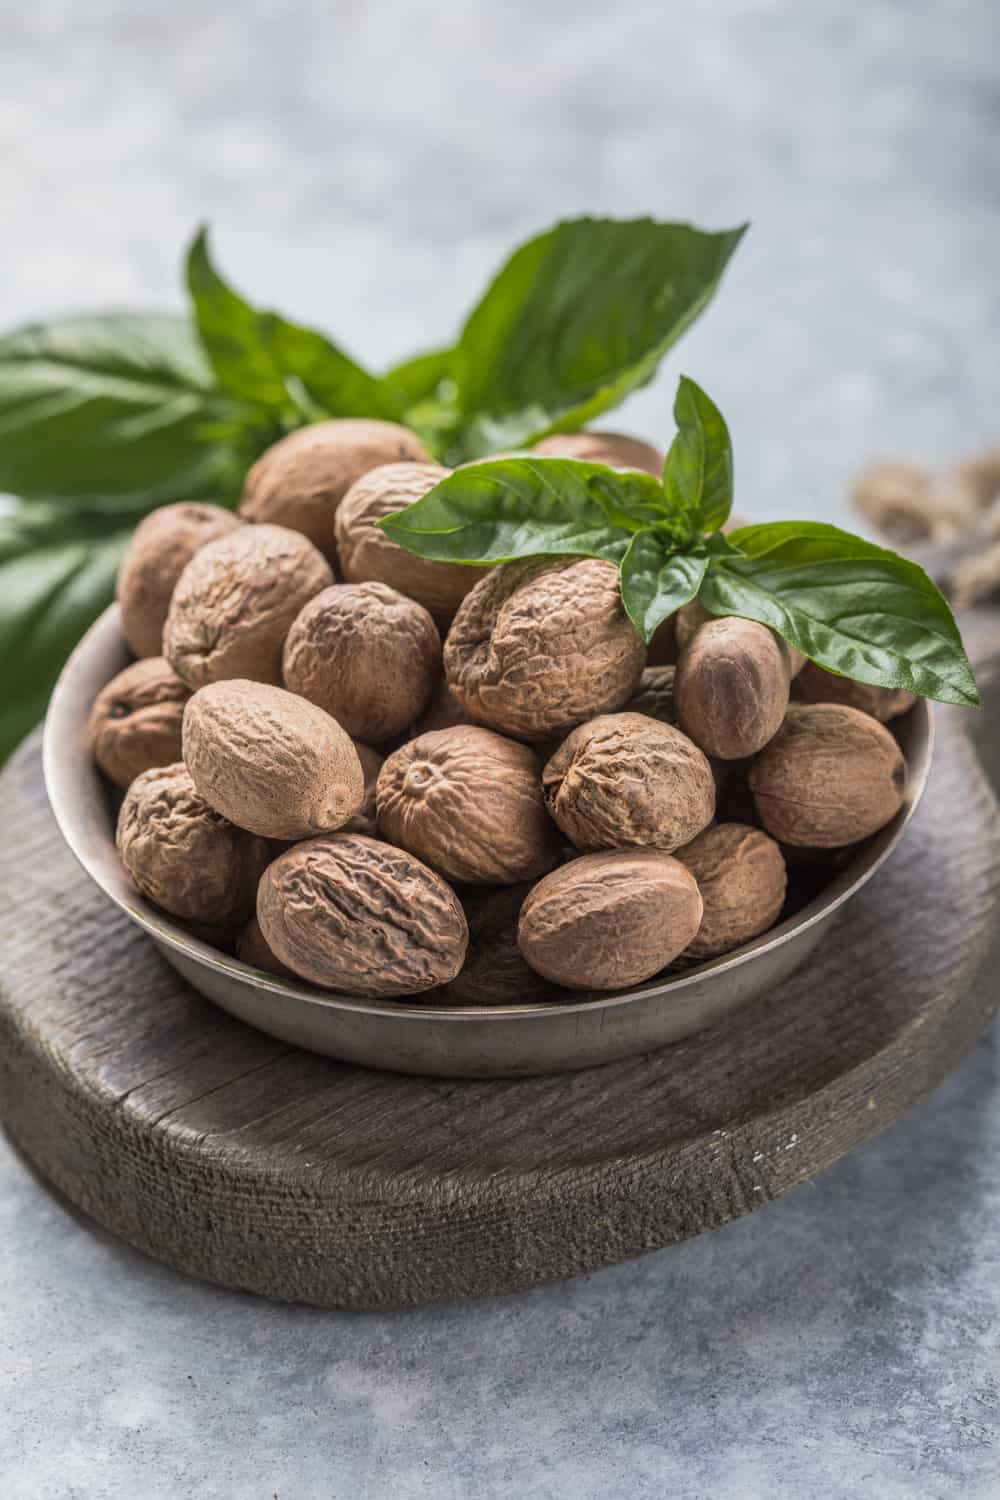 5 Tips to Store Nutmeg